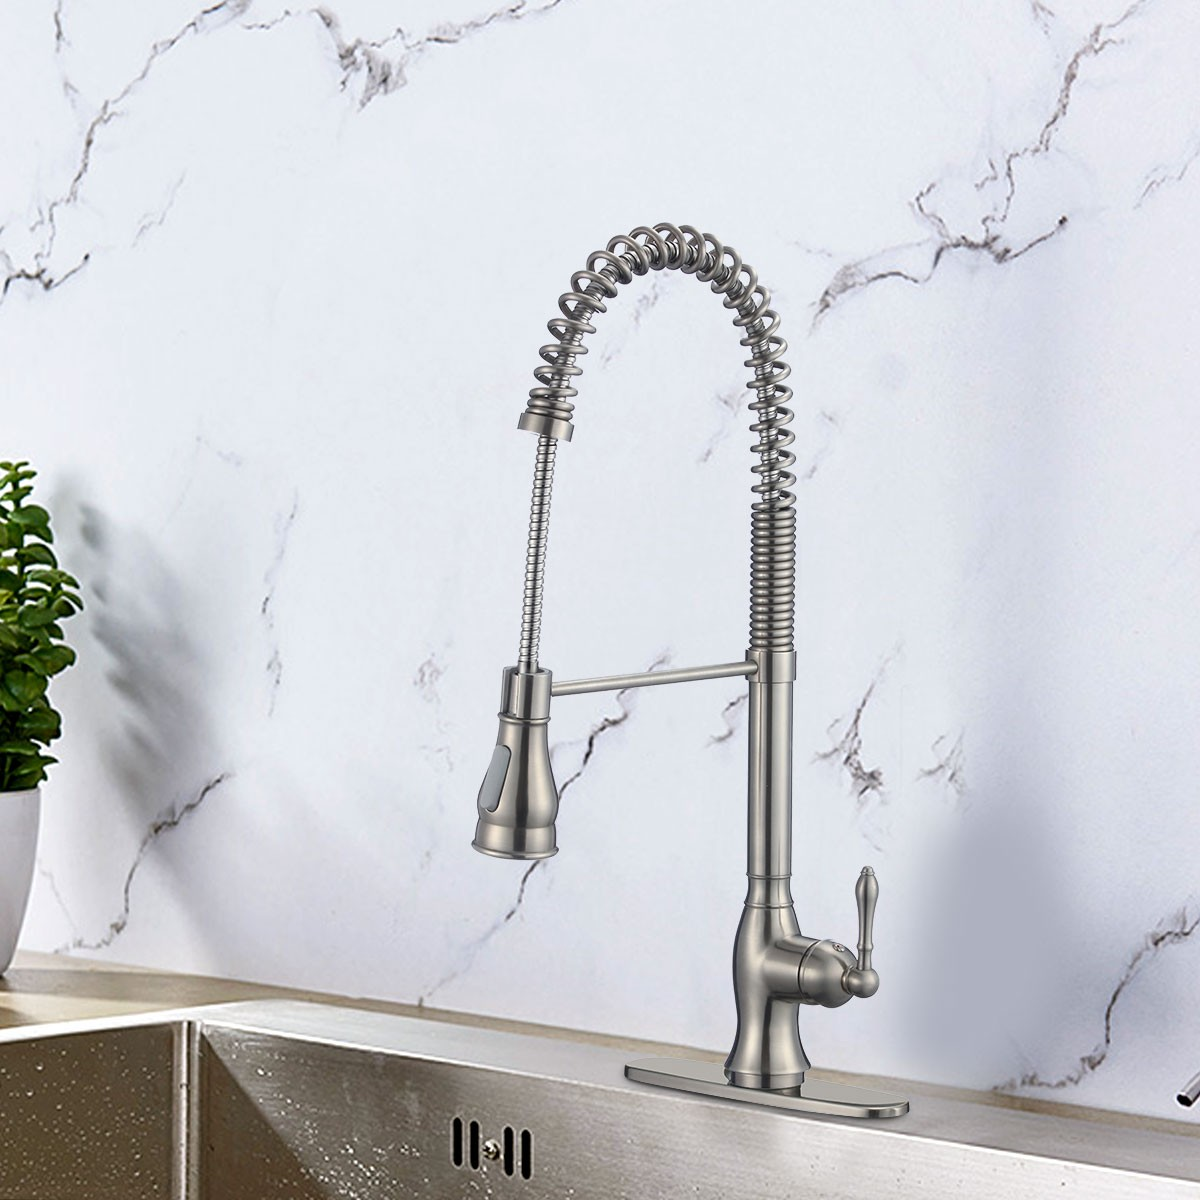 Brushed Nickel Finished Brass Kitchen Faucet - Pull Out Spray Head (82H39-BN)